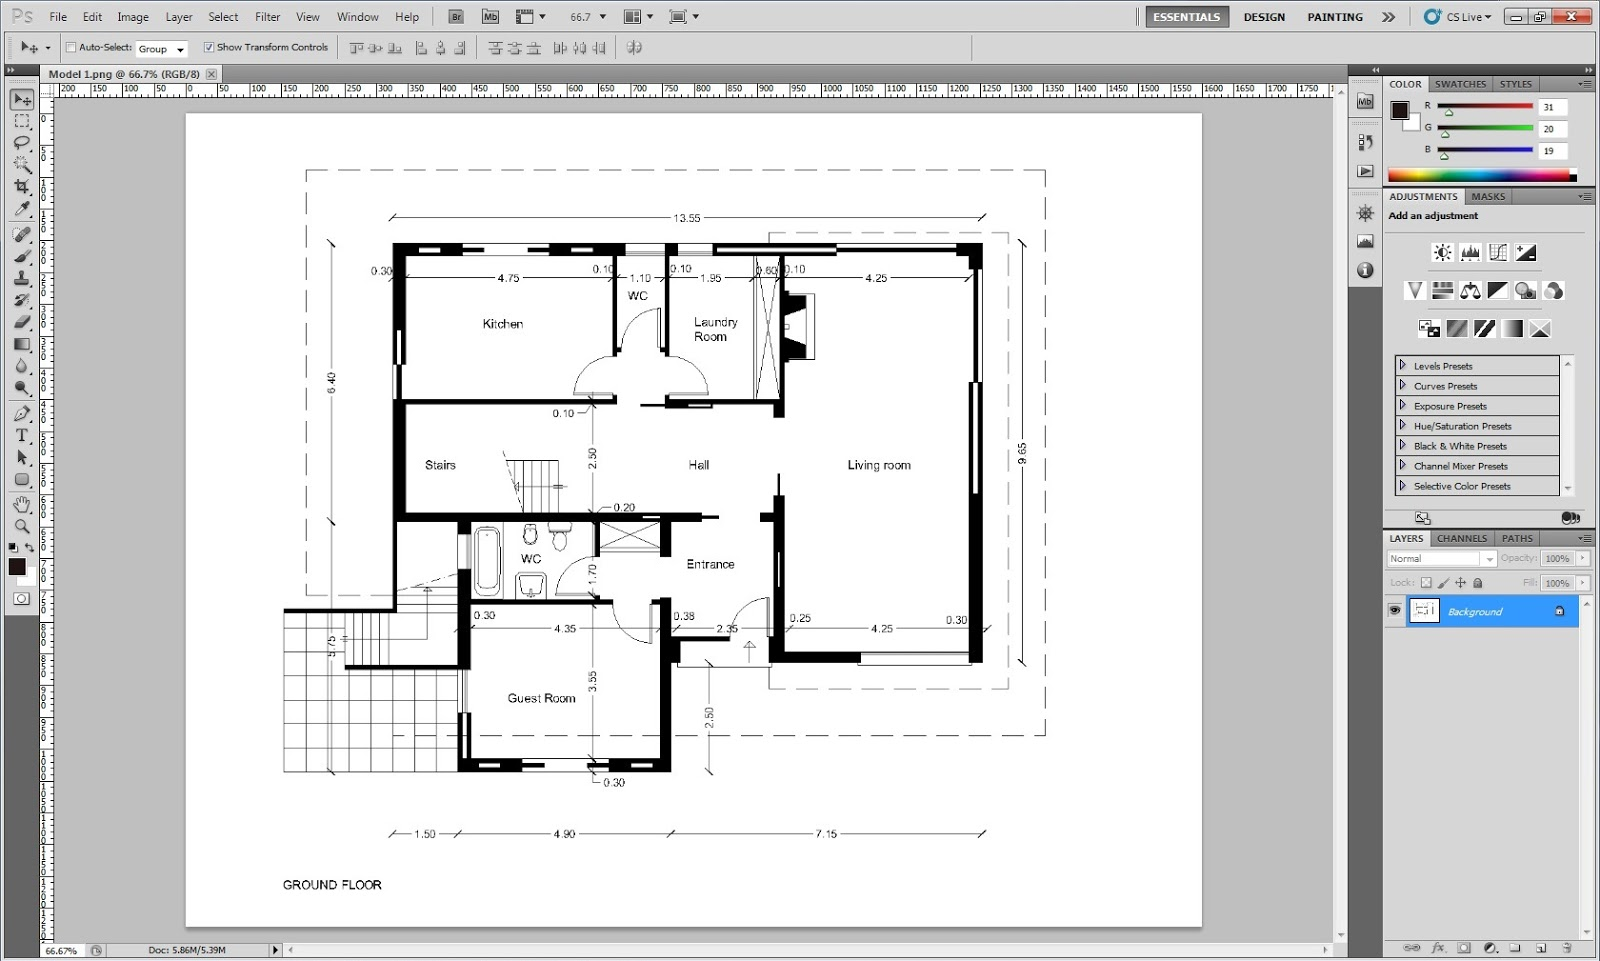 How to import AutoCAD drawings to Photoshop Part 1/2 - AutocaDesigner